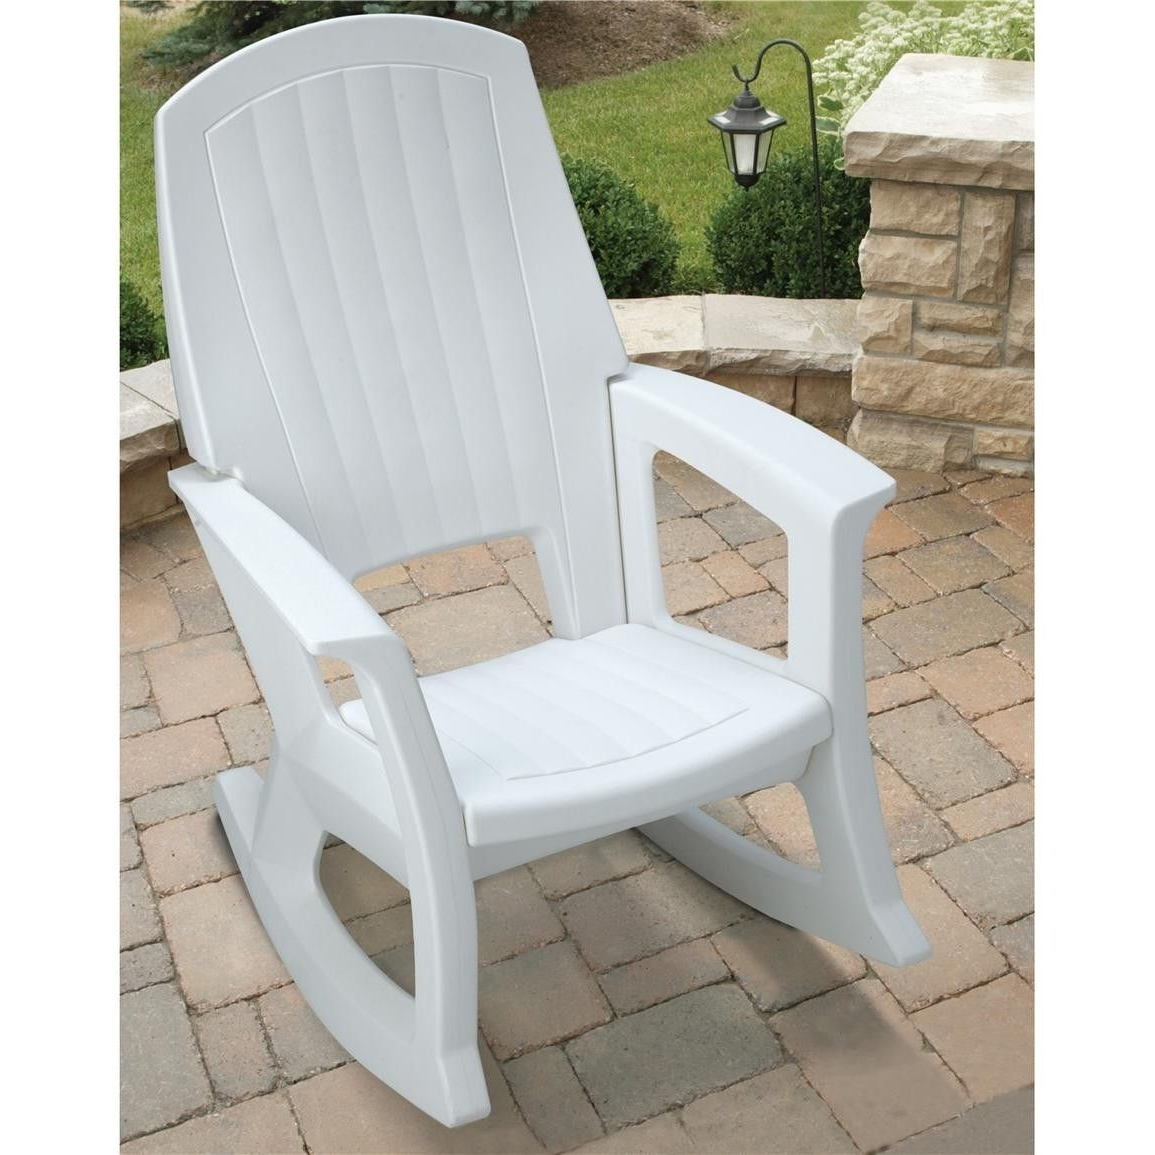 Widely Used Small Patio Rocking Chairs For Semco Plastics White Resin Outdoor Patio Rocking Chair Semw : Rural (View 6 of 15)